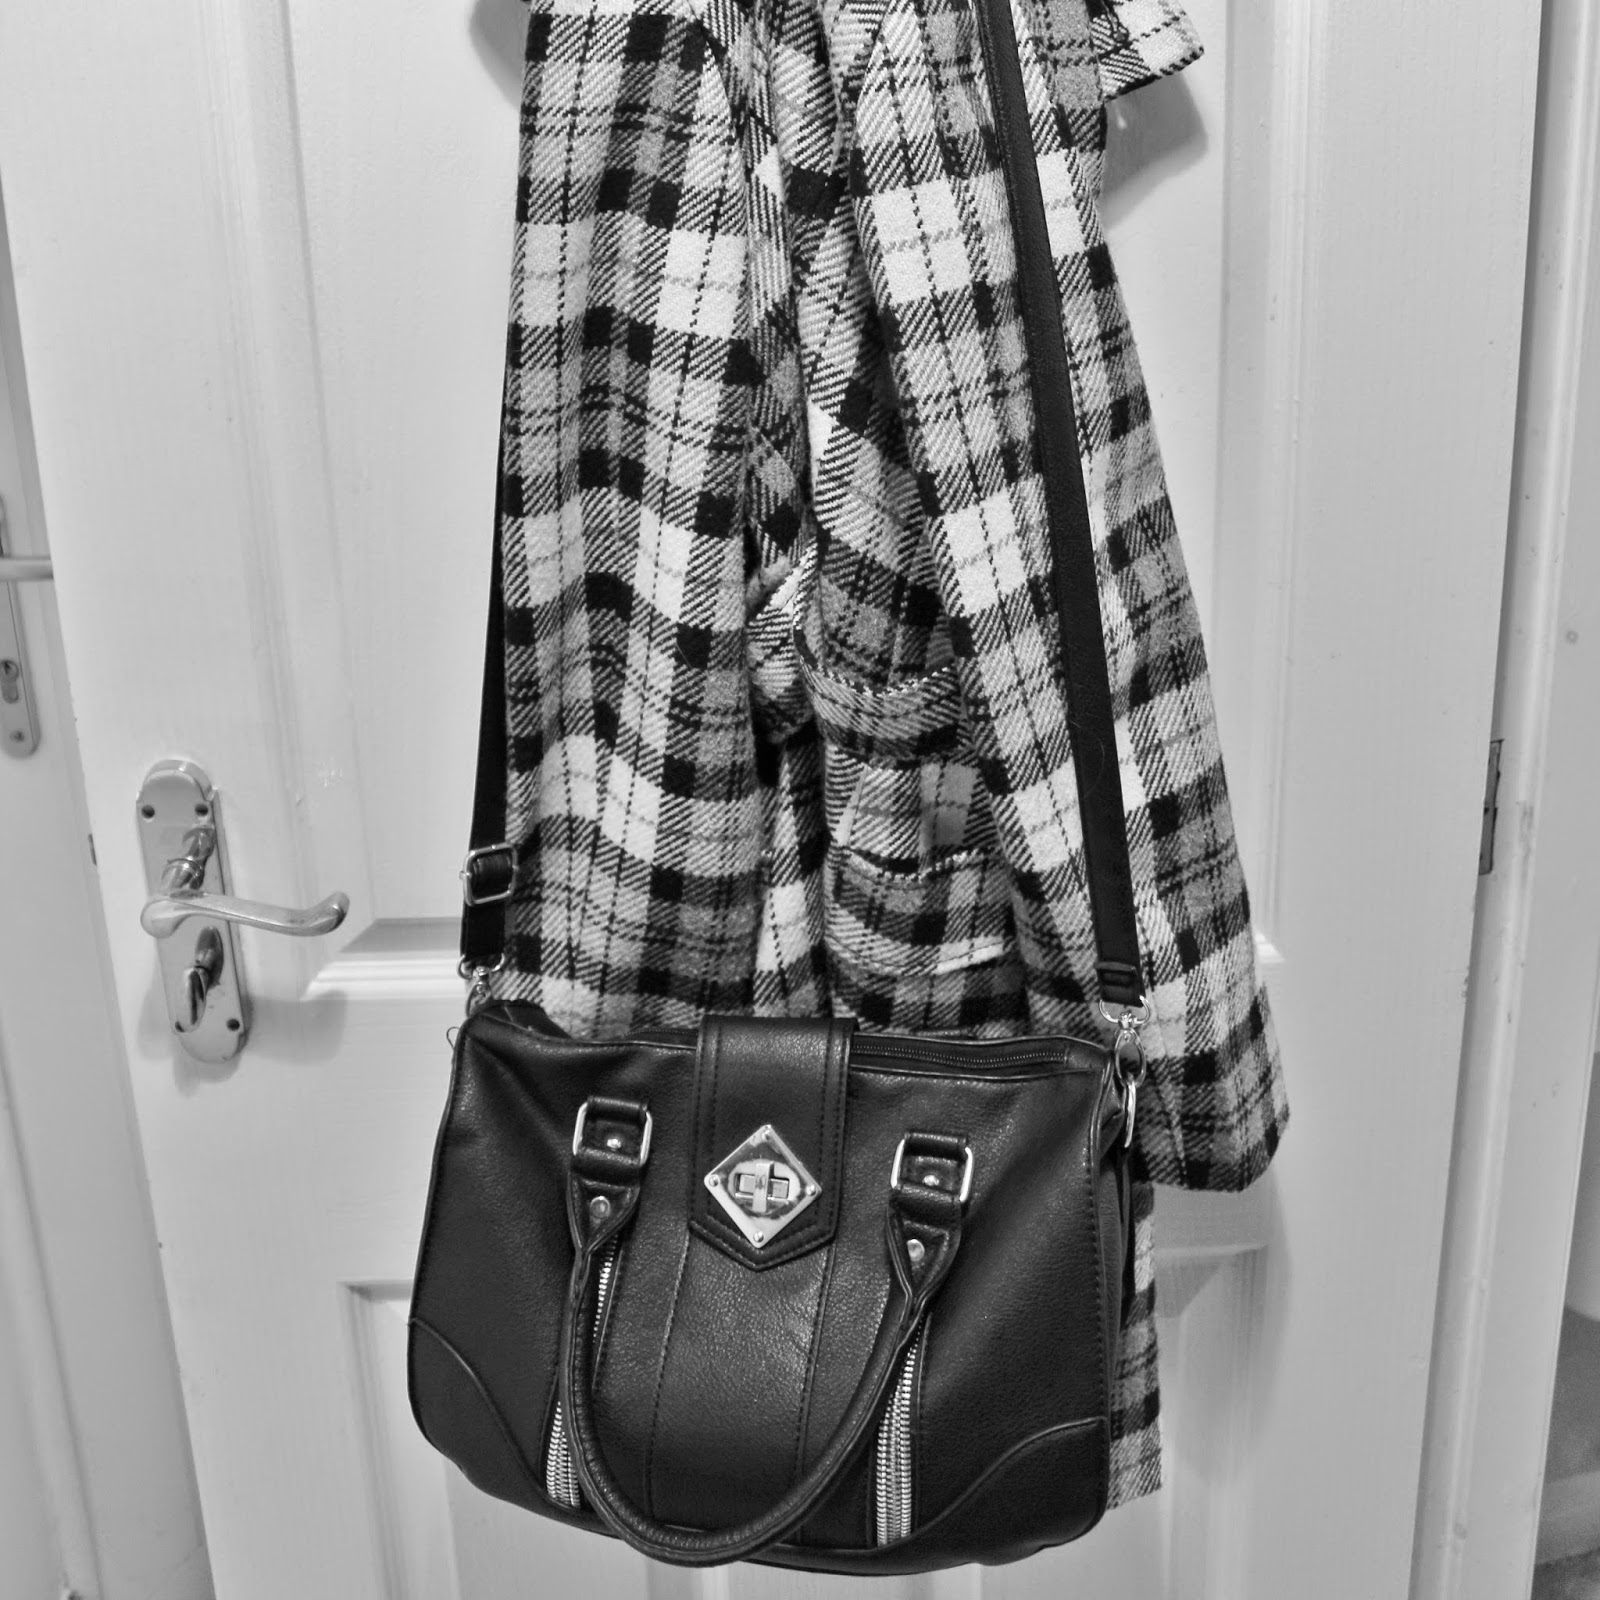 Bag and Coat hanging on door